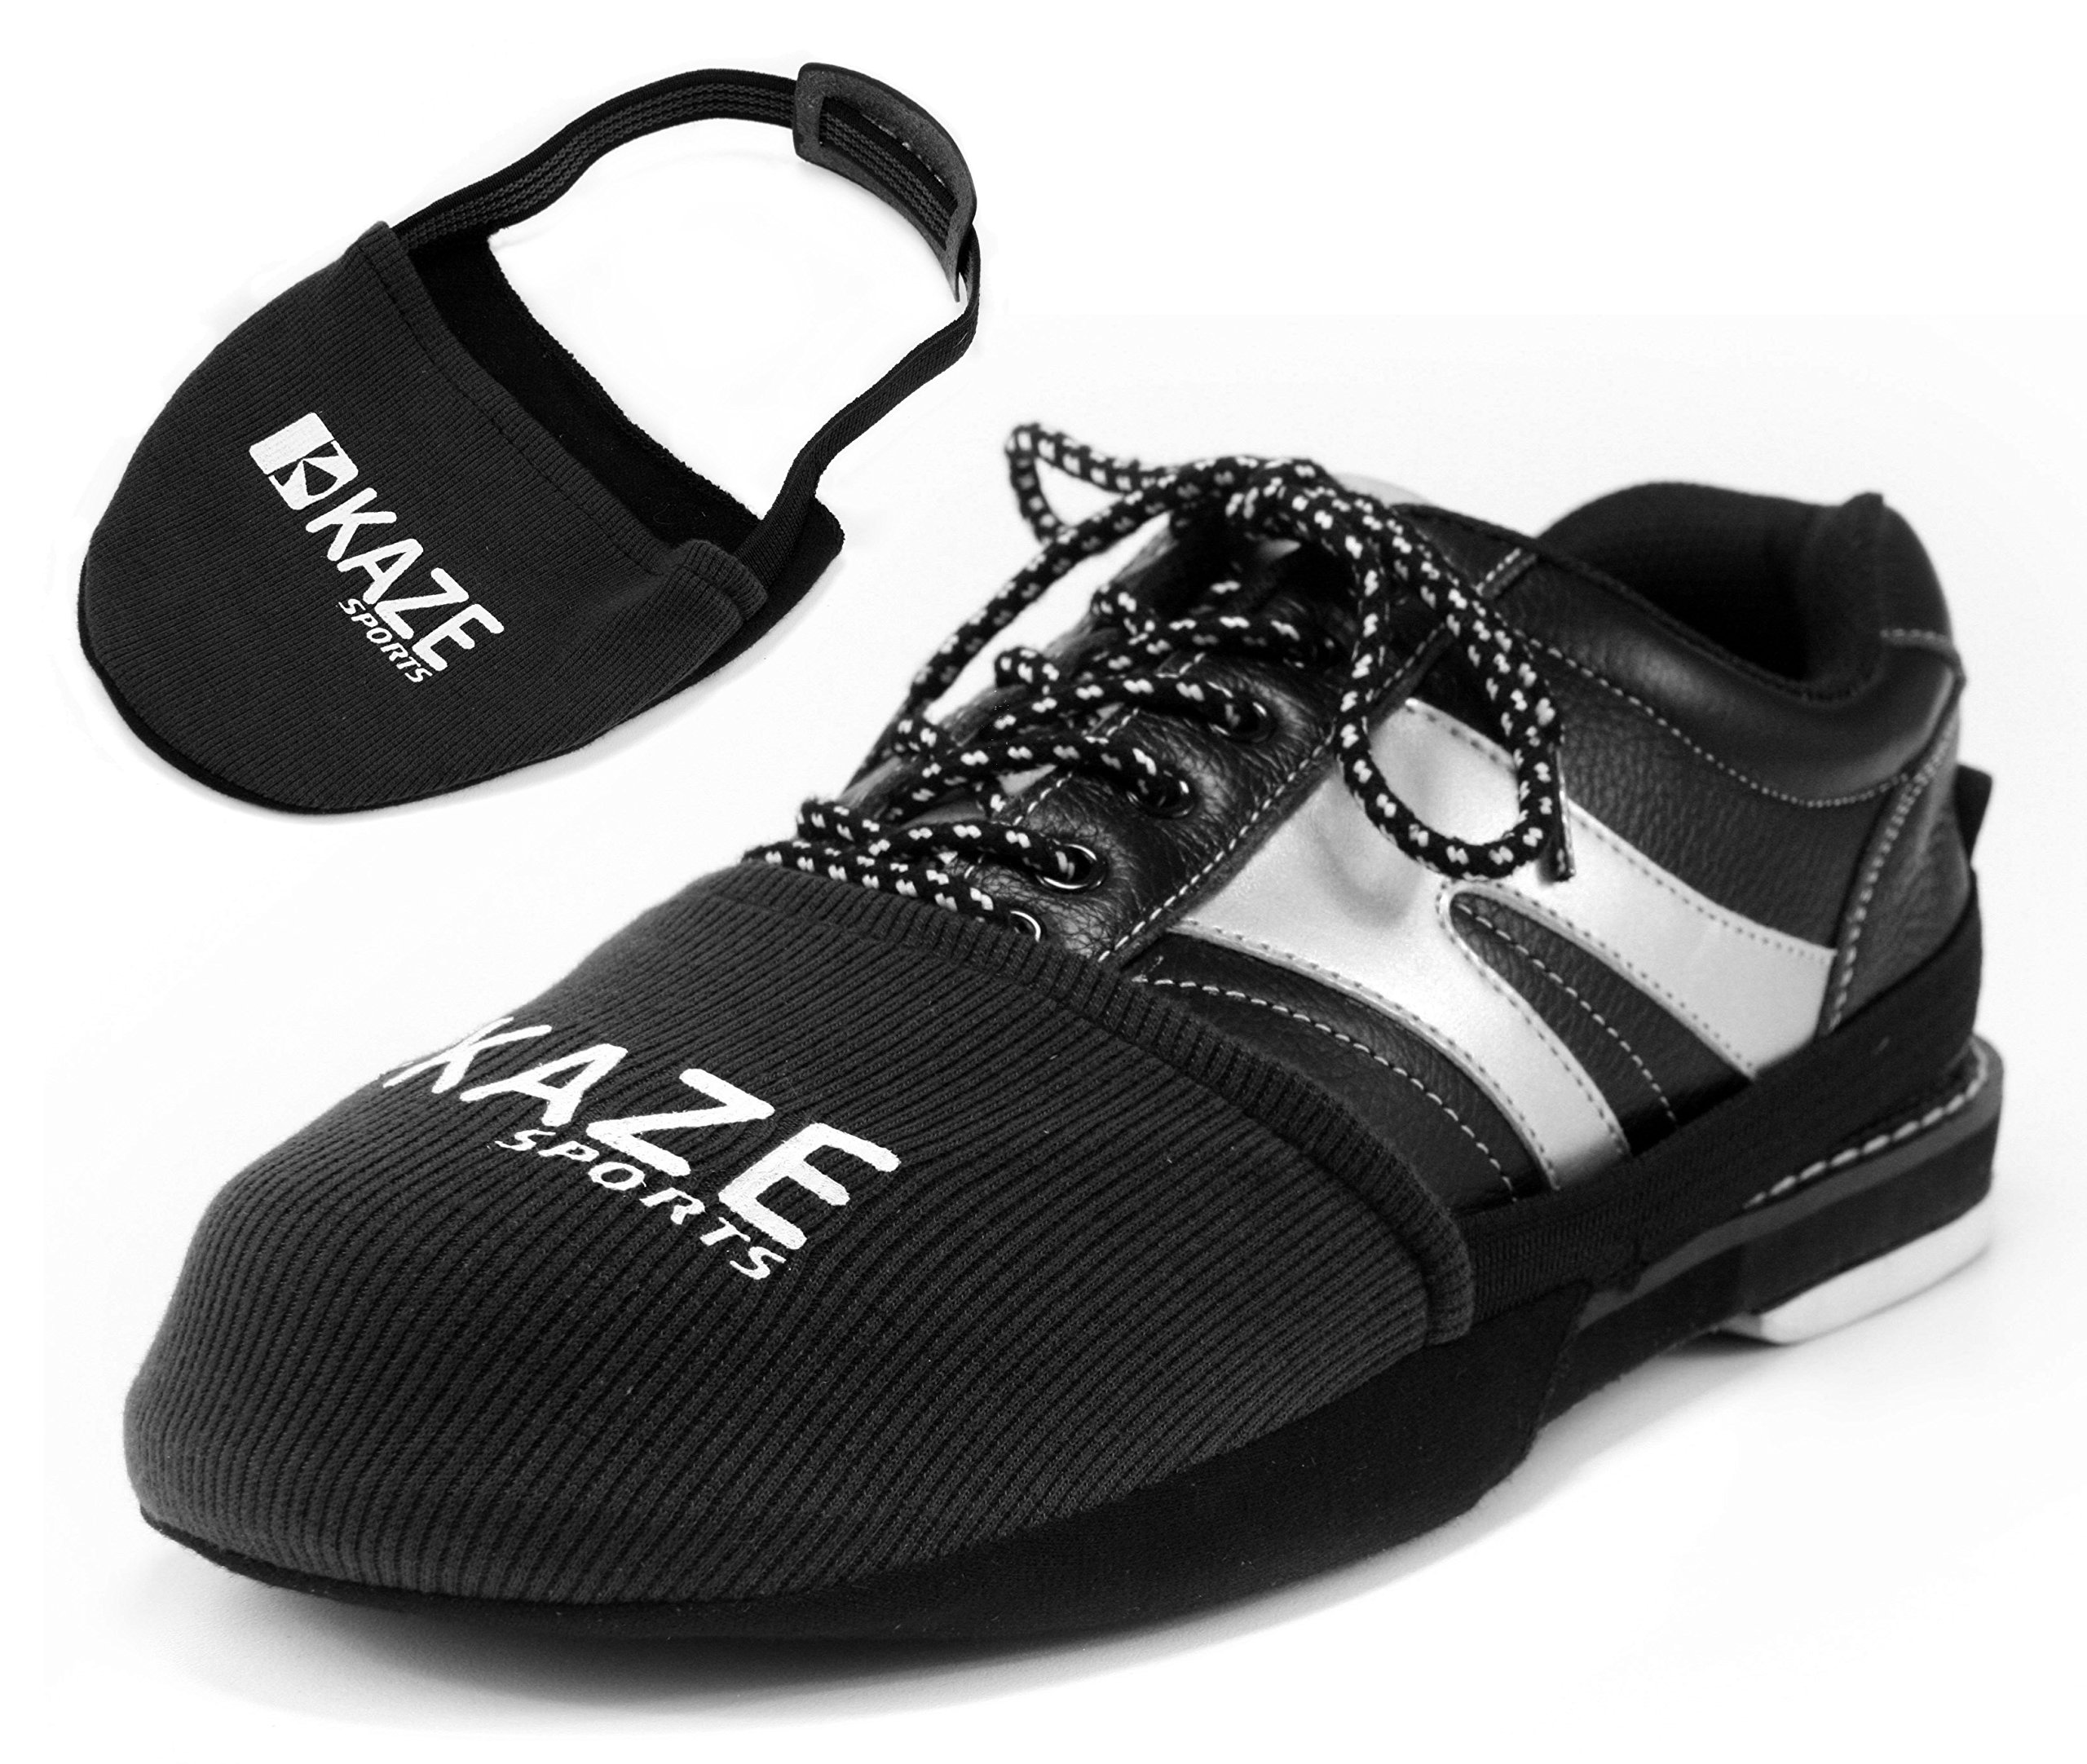 KAZE SPORTS Bowling Shoe Slider, Black, 3 Pack